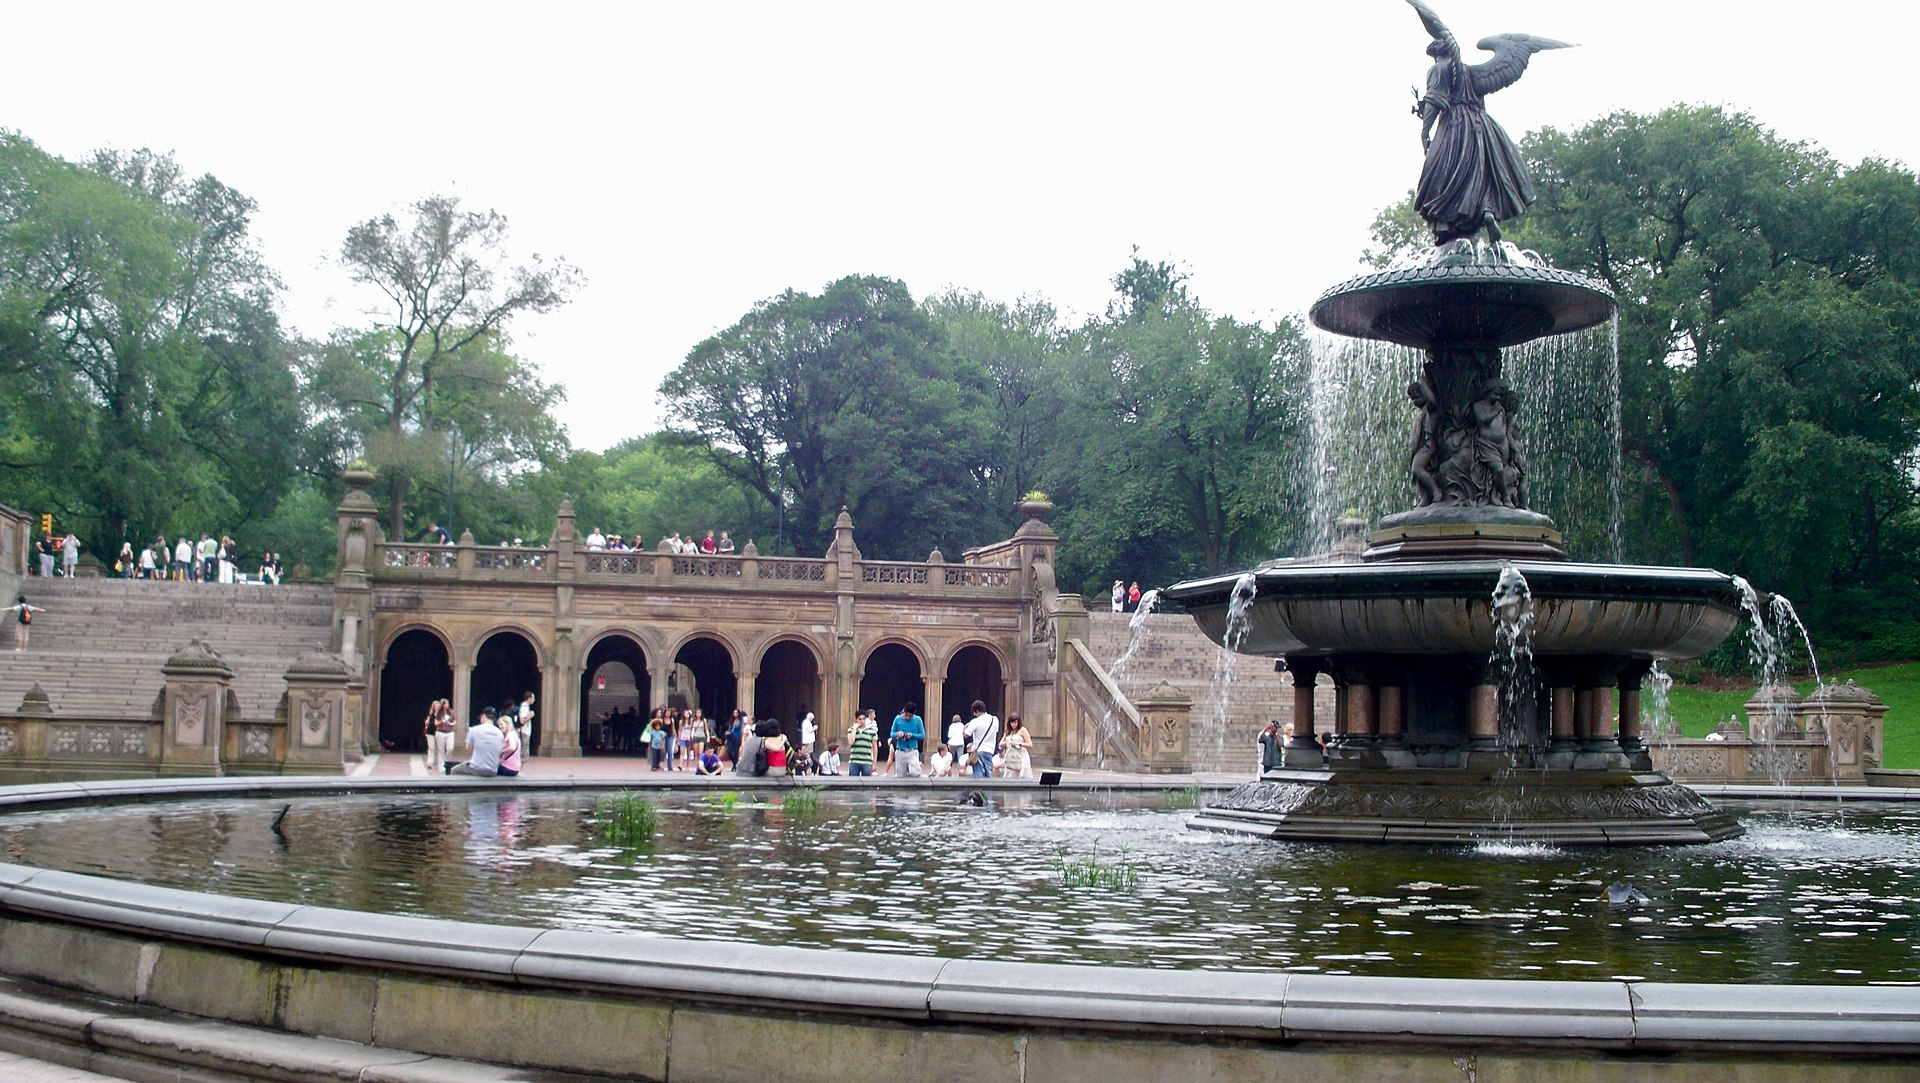 1920px-Angel_of_the_Waters_Fountain_and_Bethesda_Terrace%2C_Central_Park%2C_NYC.jpg